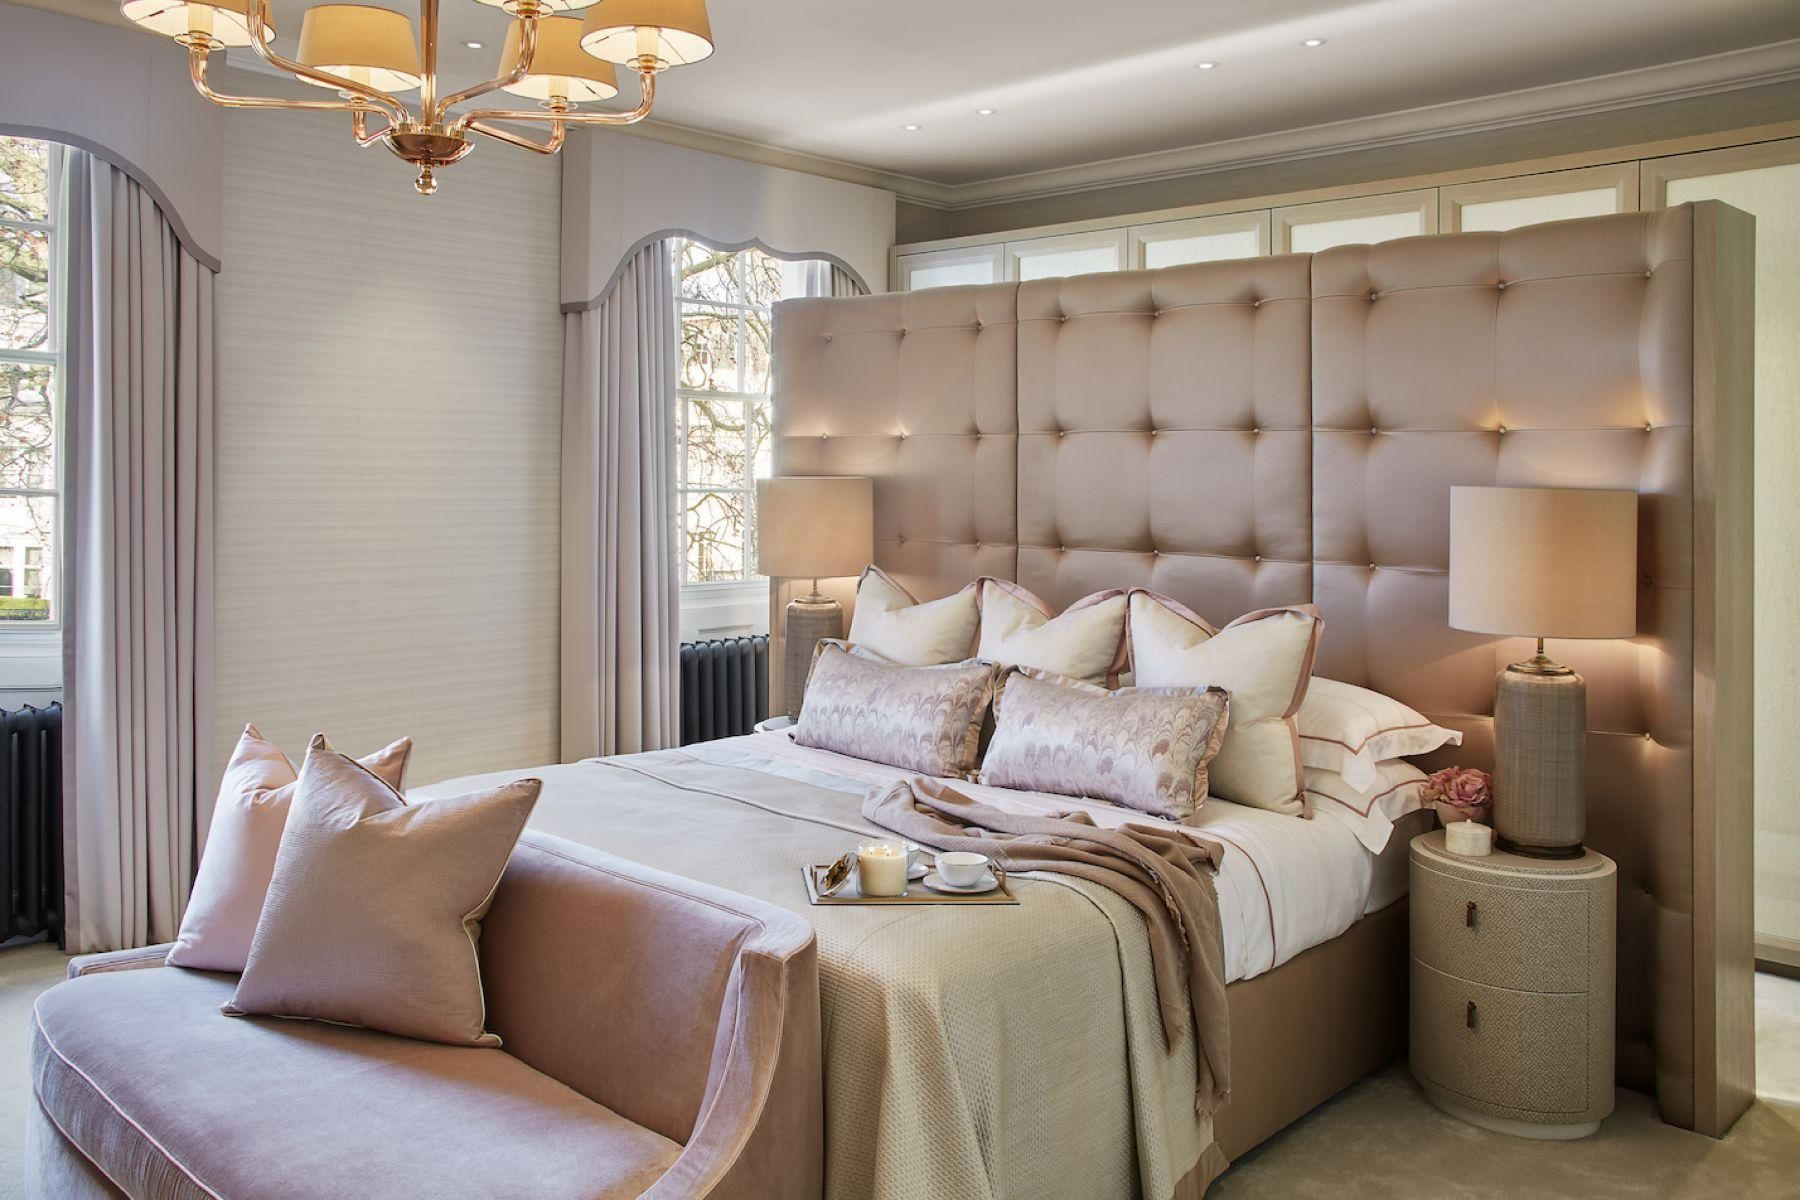 High End Interior Design Luxury Residential Interiors London Interior Designer Property Devel Luxury Interior Luxury House Interior Design Bed Linens Luxury